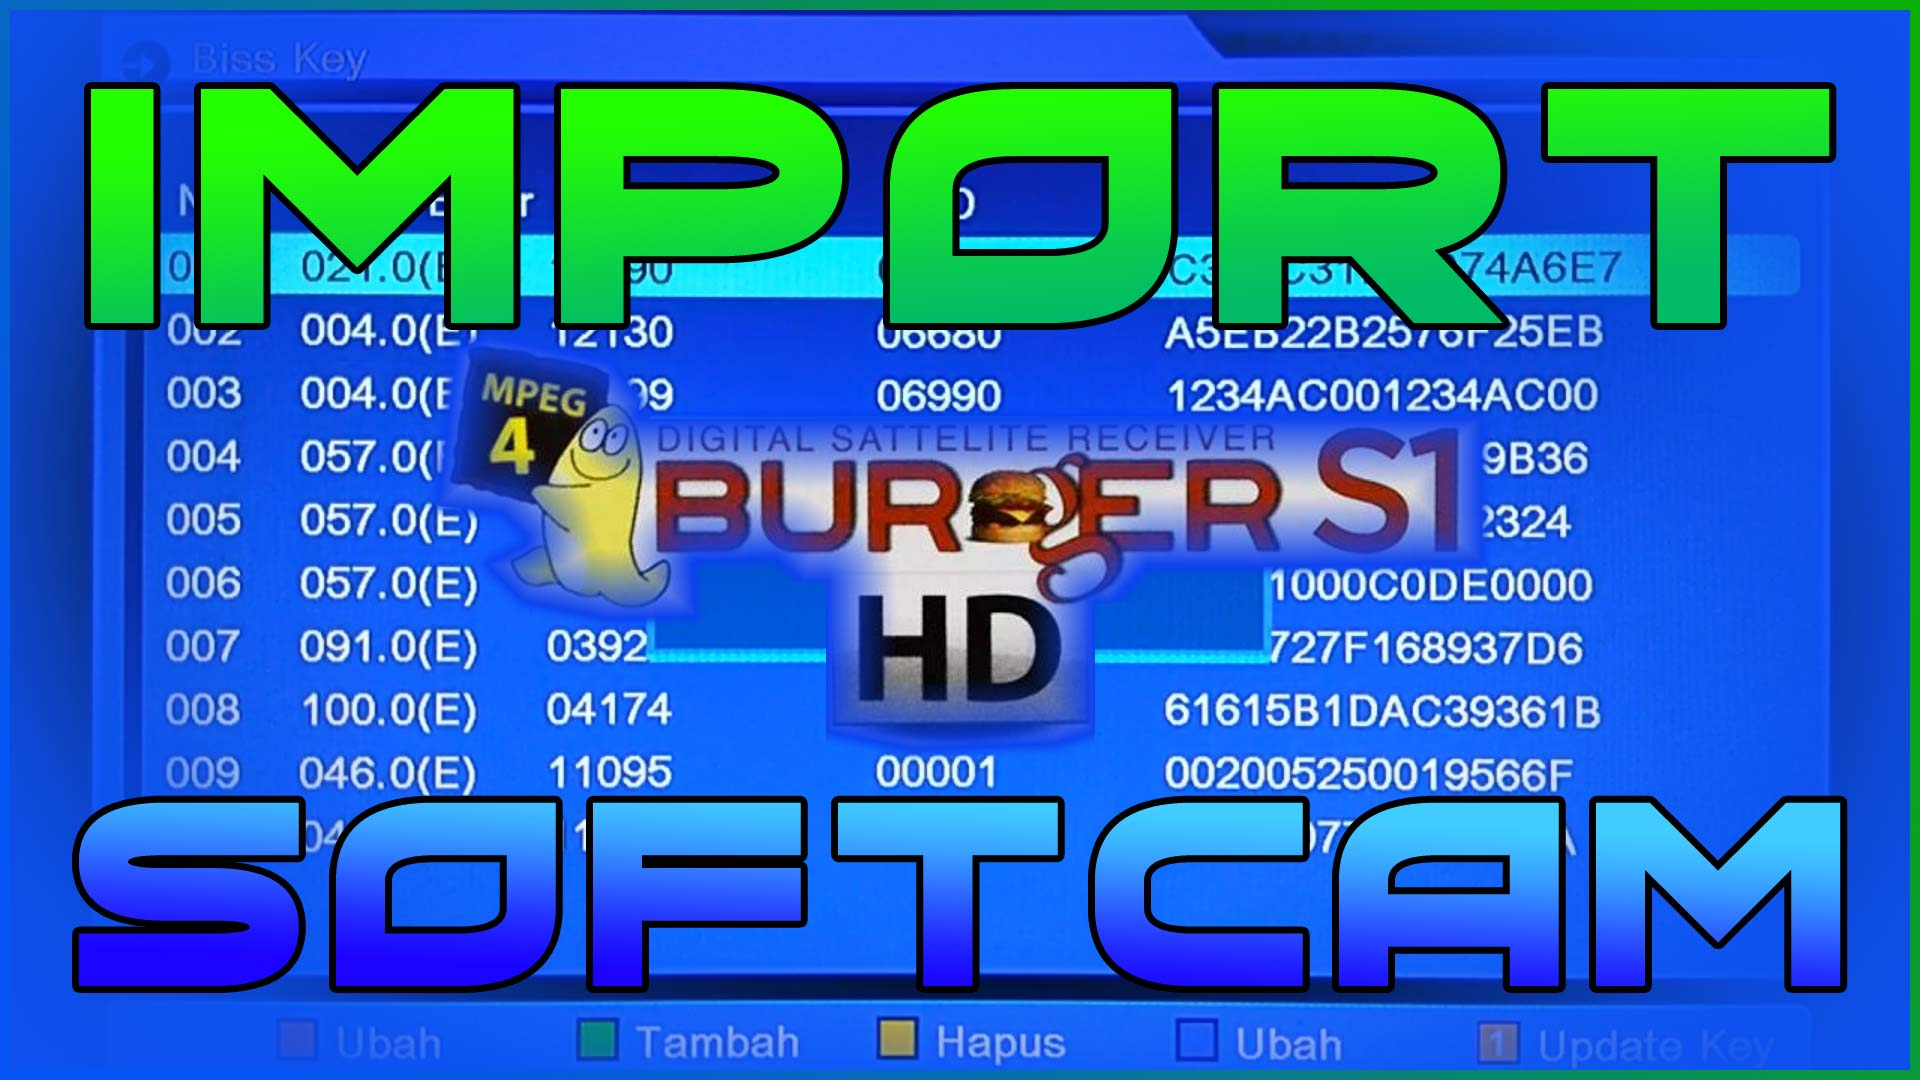 Cara Input Softcam Key Matrix Burger S1 Mini Terbaru